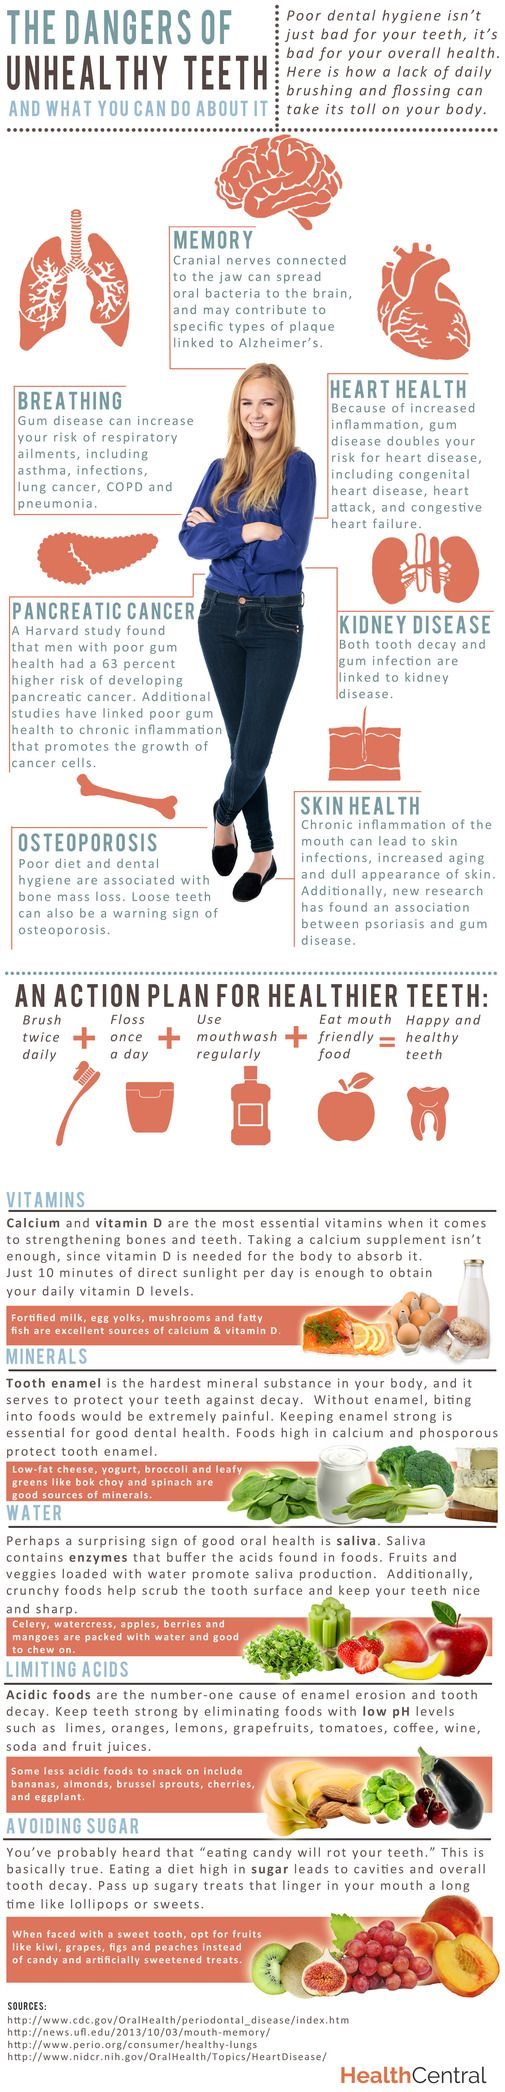 Here is a look at how your mouth affects your health and what you can do about it.   See more at: http://www.healthcentral.com/diet-exercise/c/458275/168528/unhealthy-infographic?ap=2012  #DentalHealth #Teeth #Infographic